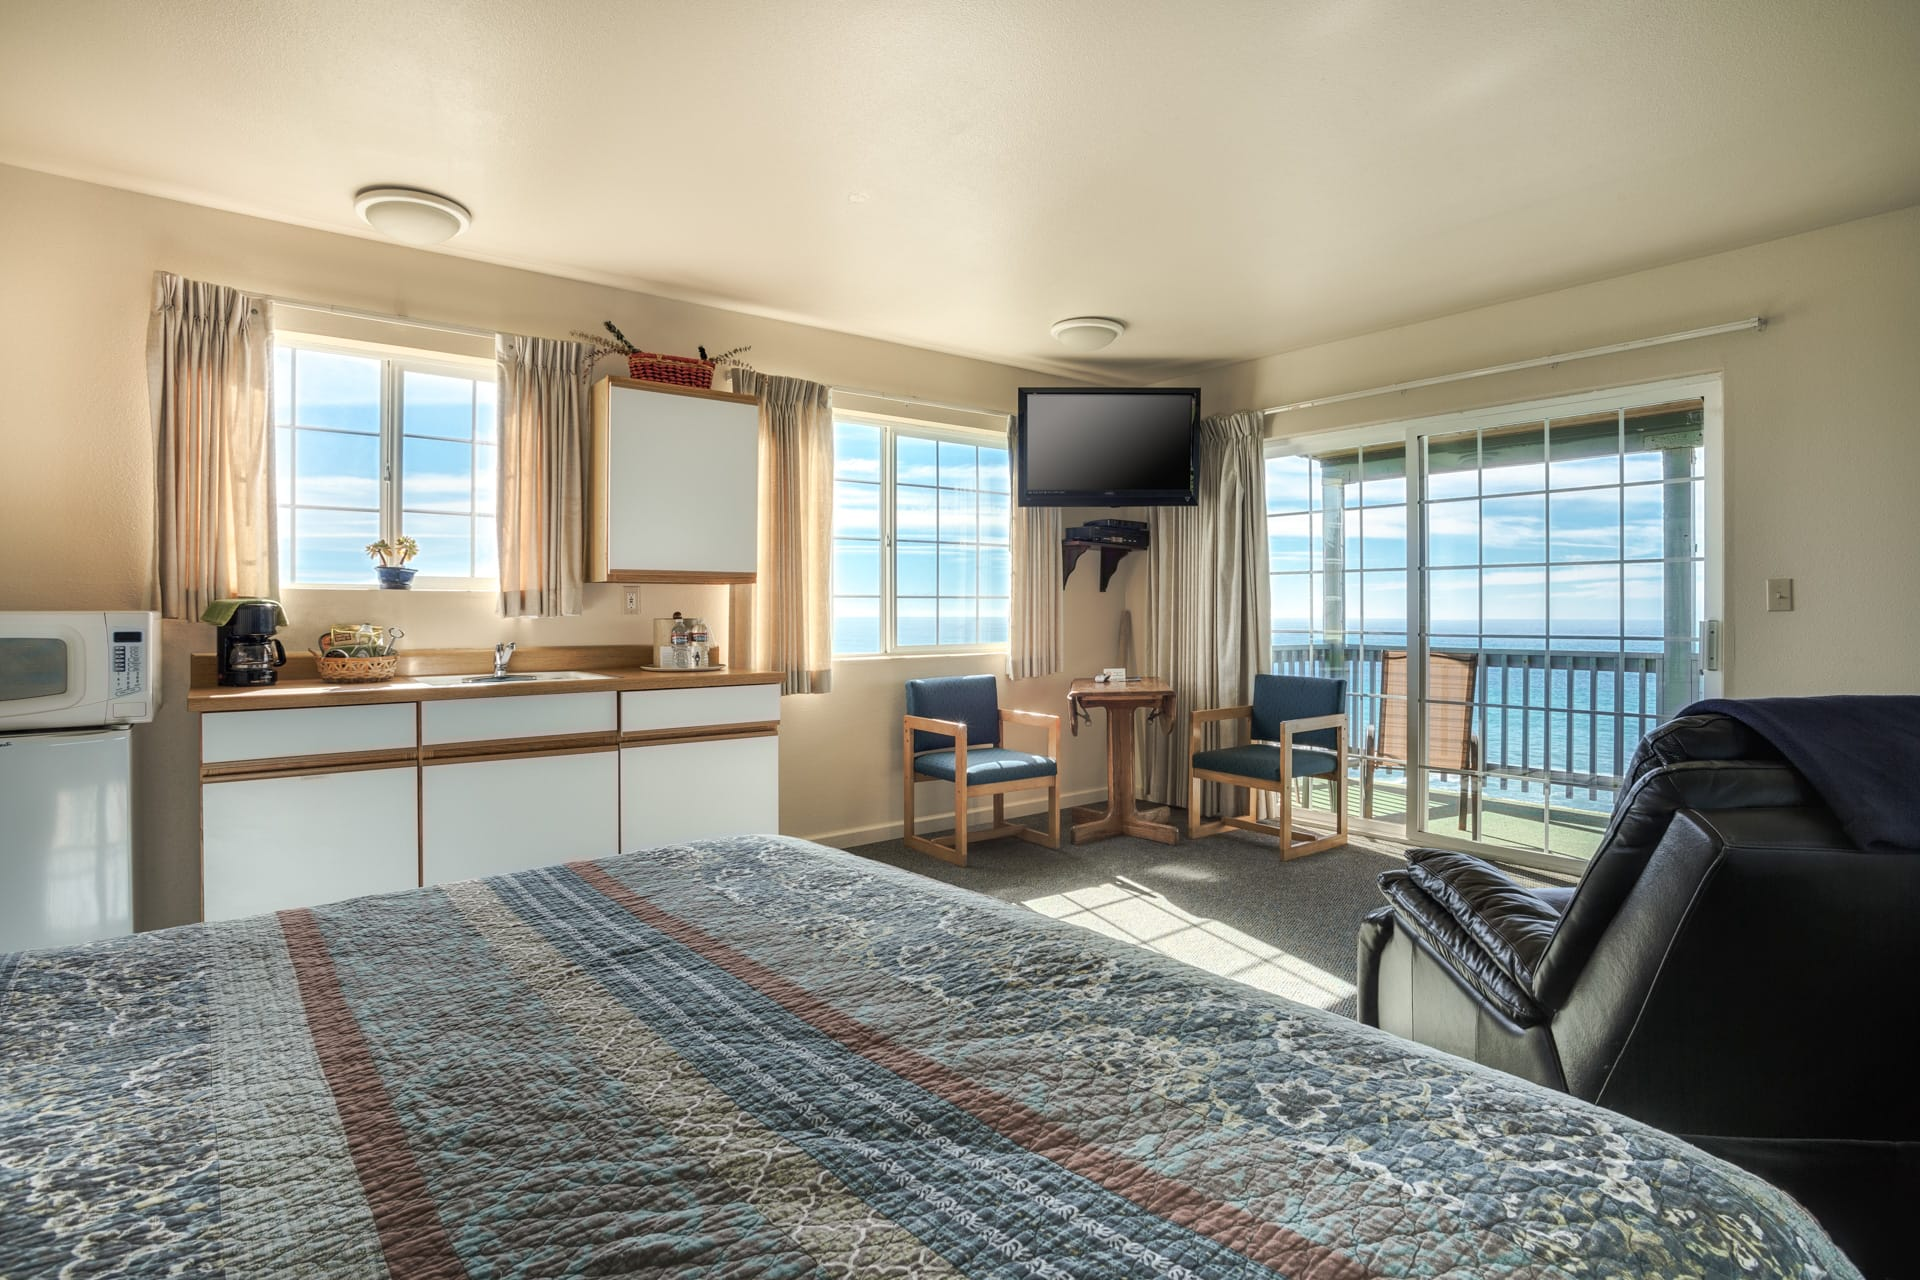 Inn of the Lost Coast oceanfront Corner Guestroom featuring extended stay kitchenette with microwave, mini refrigerator, food prep countertops, sink, and plenty of cabinets for food storage. Windows over kitchenette sink and workspace area flood this guestroom with sunlight and provide panoramic views of Shelter Cove from both inside guestroom as well as on private balcony.